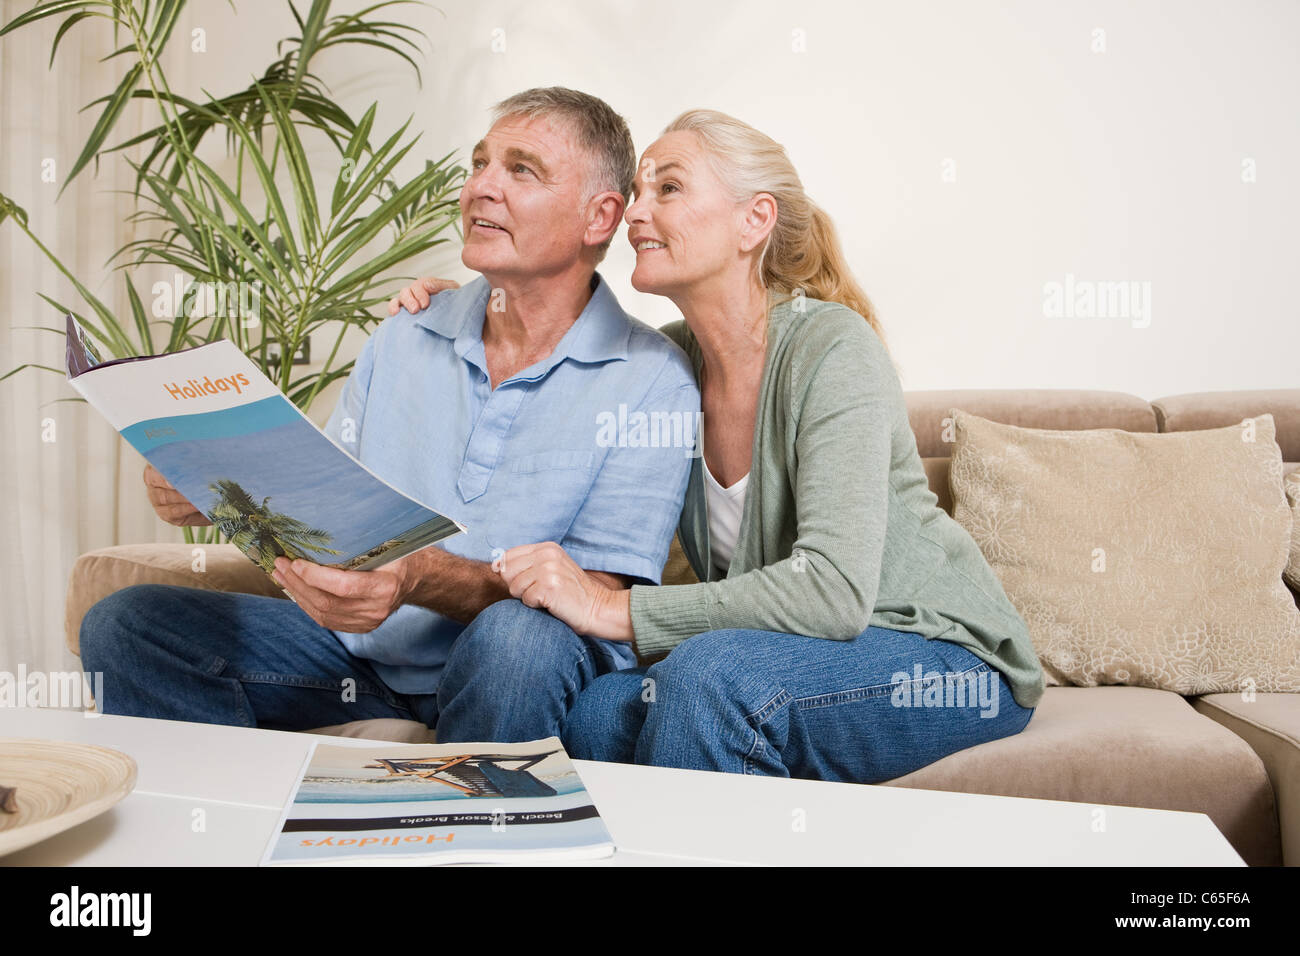 Mature couple planning a holiday - Stock Image